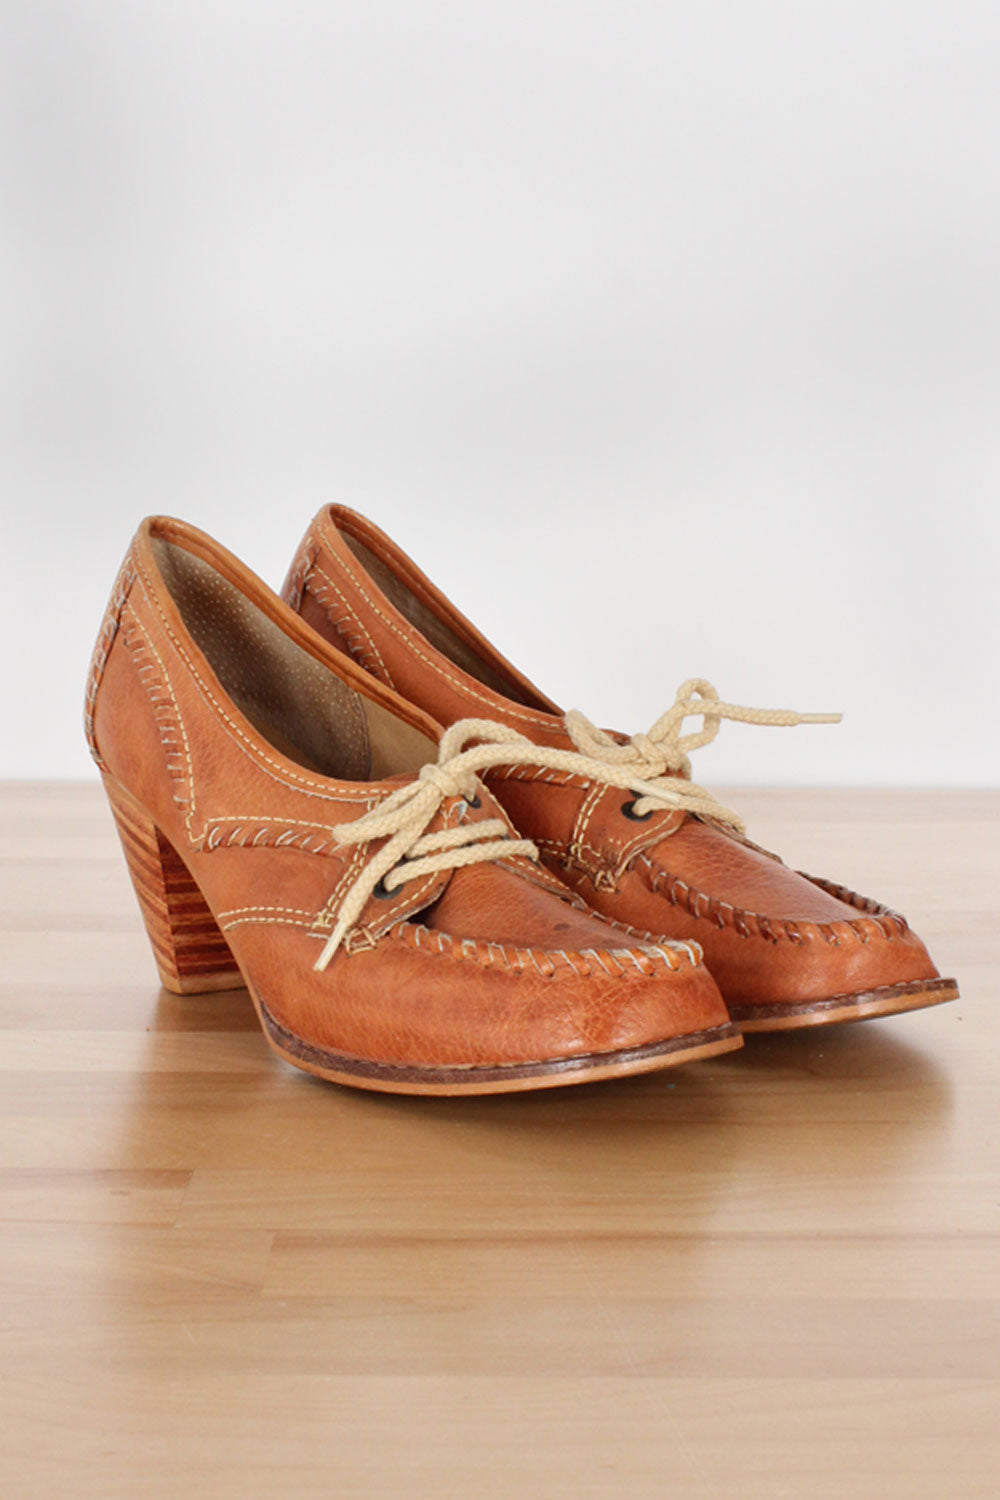 Honey Lace-up Leather Shoes 7.5-8